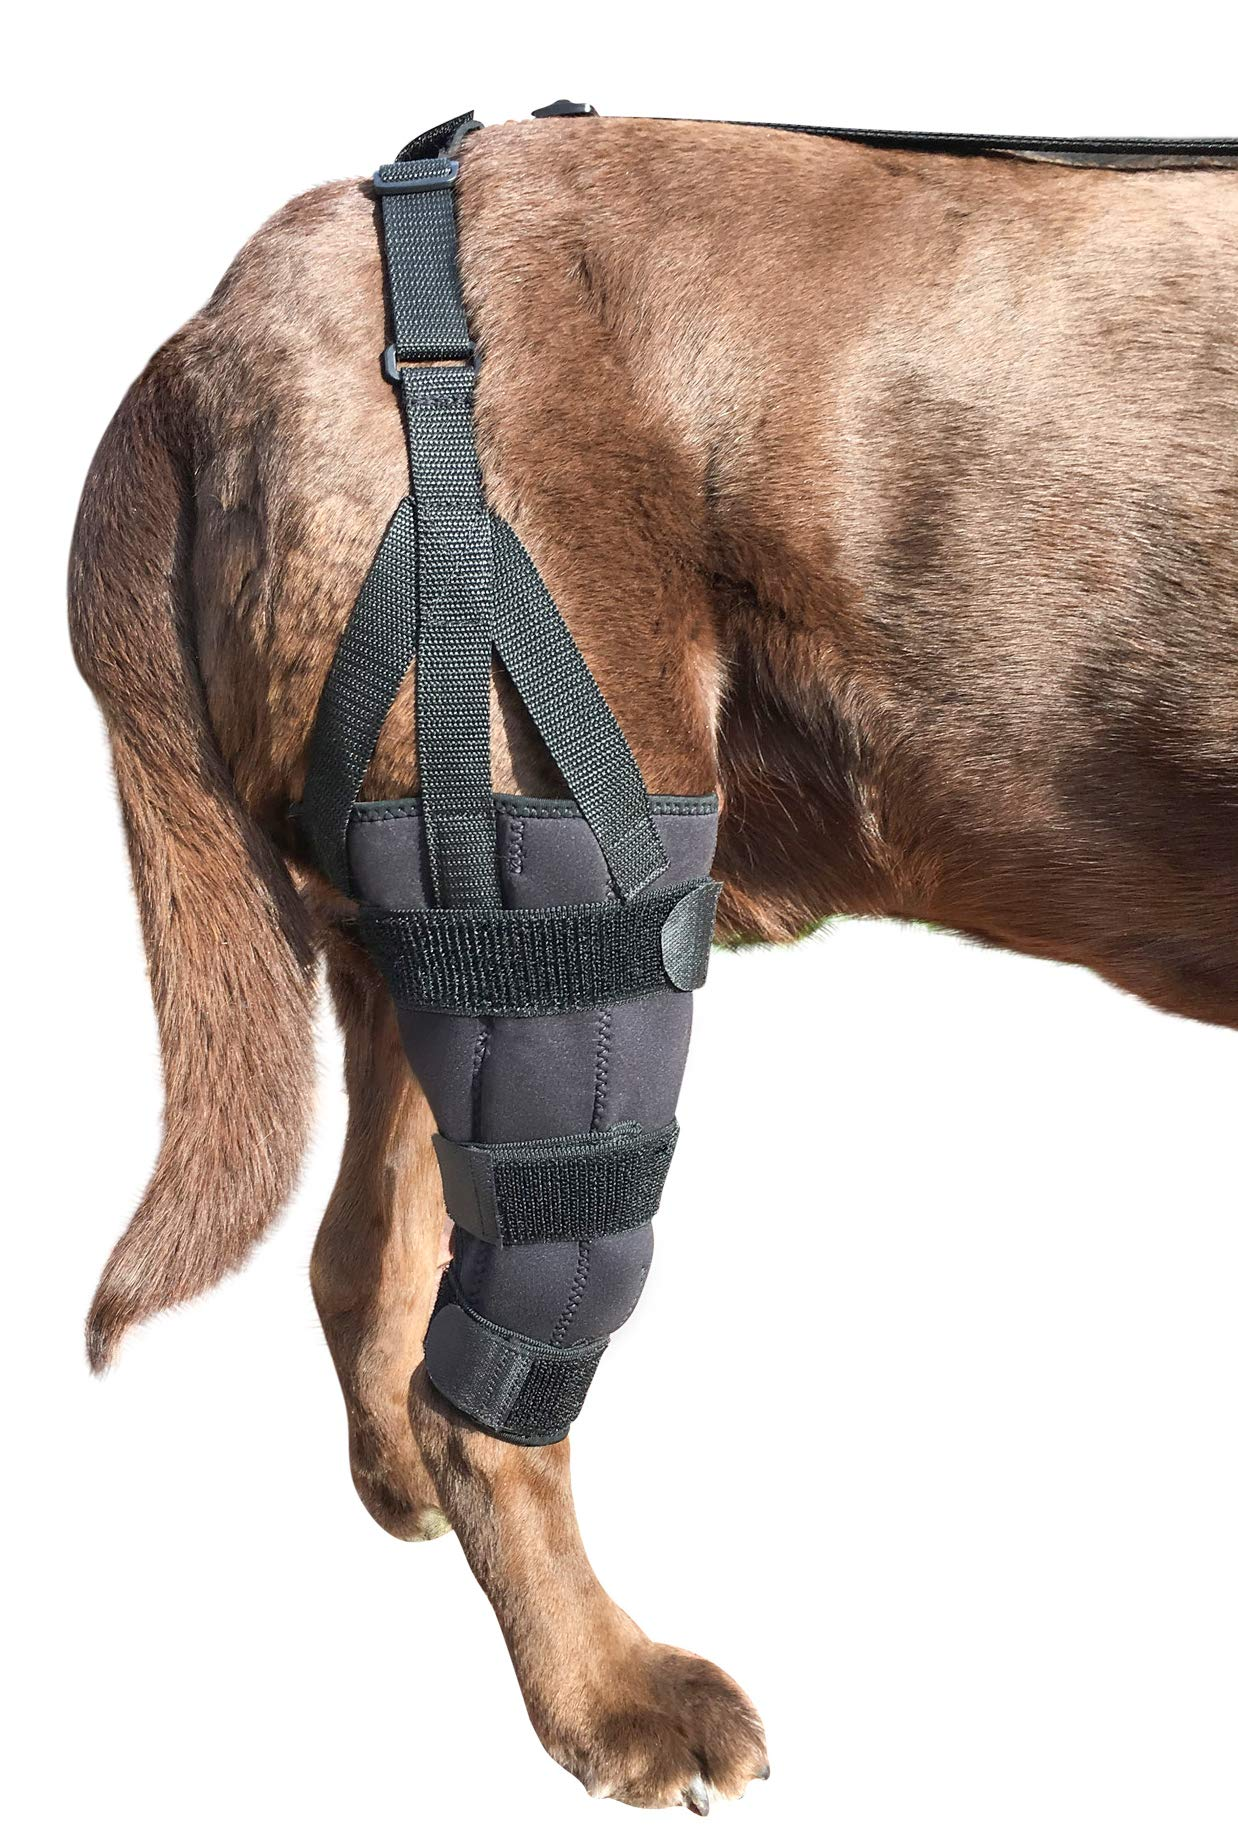 Labra Dog Canine K9 Knee Stifle Brace Wrap Metal Splint Hinged Flexible Support Treat ACL CCL Luxating Patella Cruciate Ligament Sprain Strain Tear Injuries by Labra